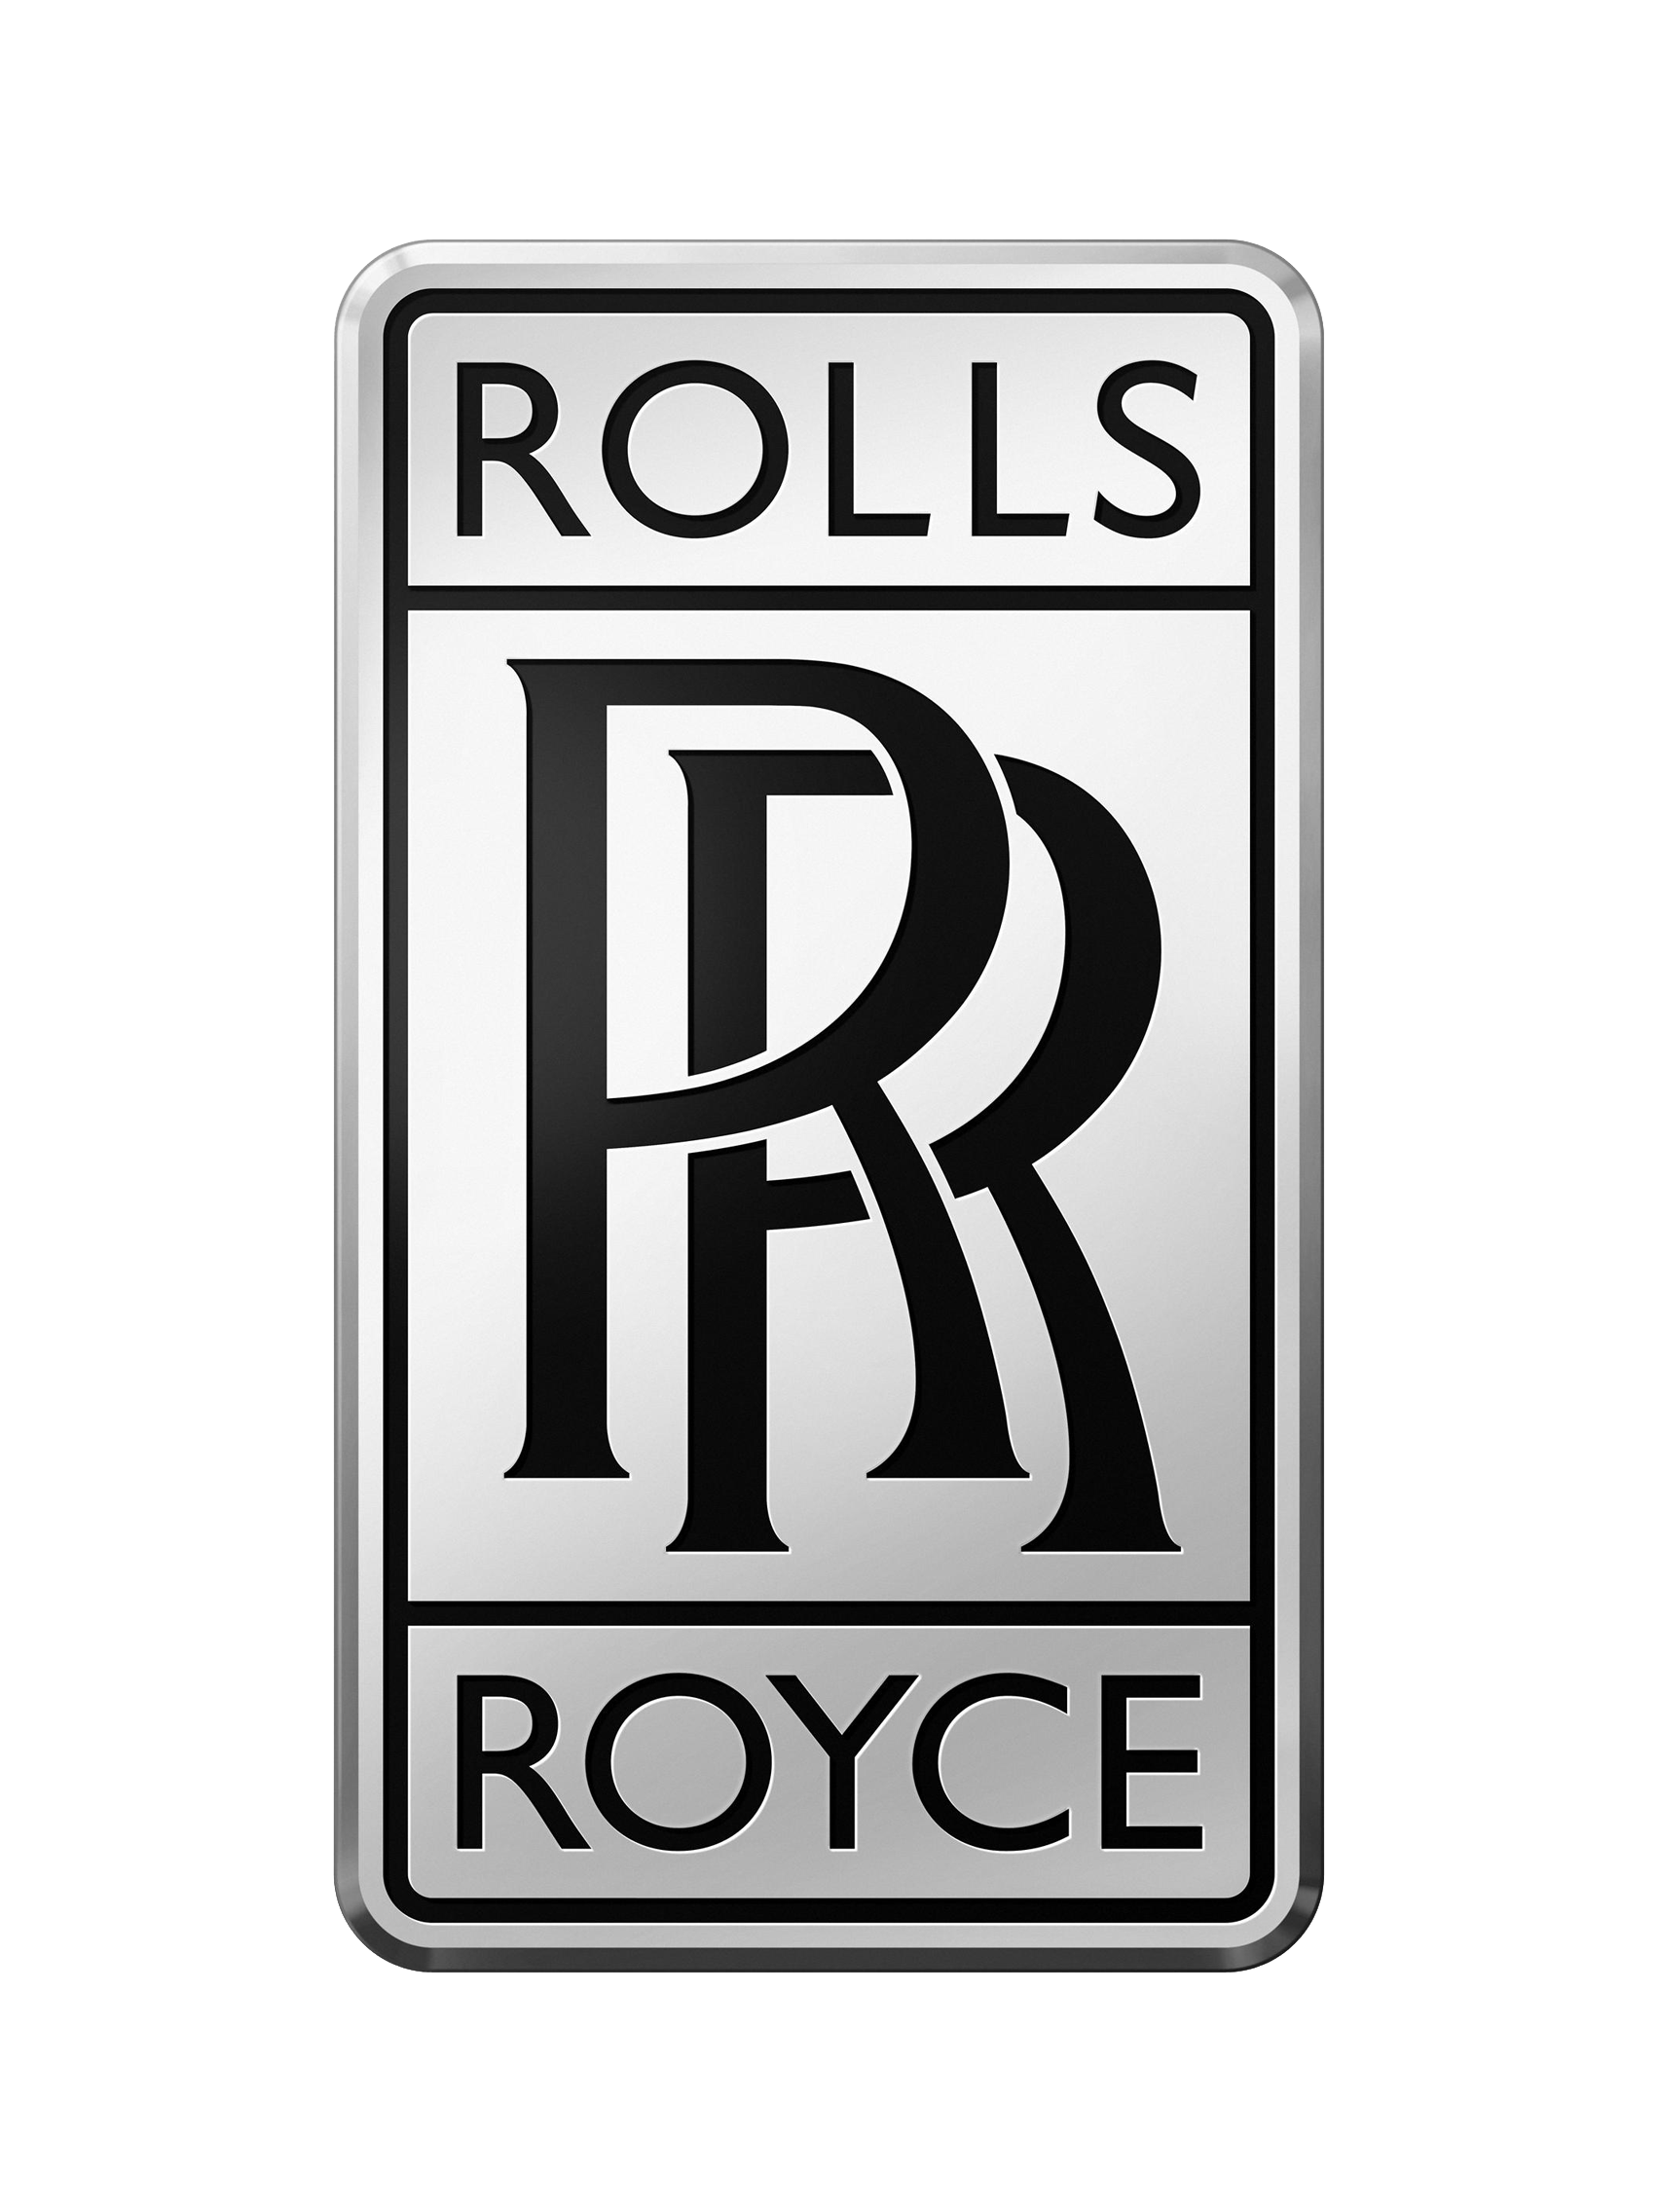 rolls royce rr logo logok. Black Bedroom Furniture Sets. Home Design Ideas